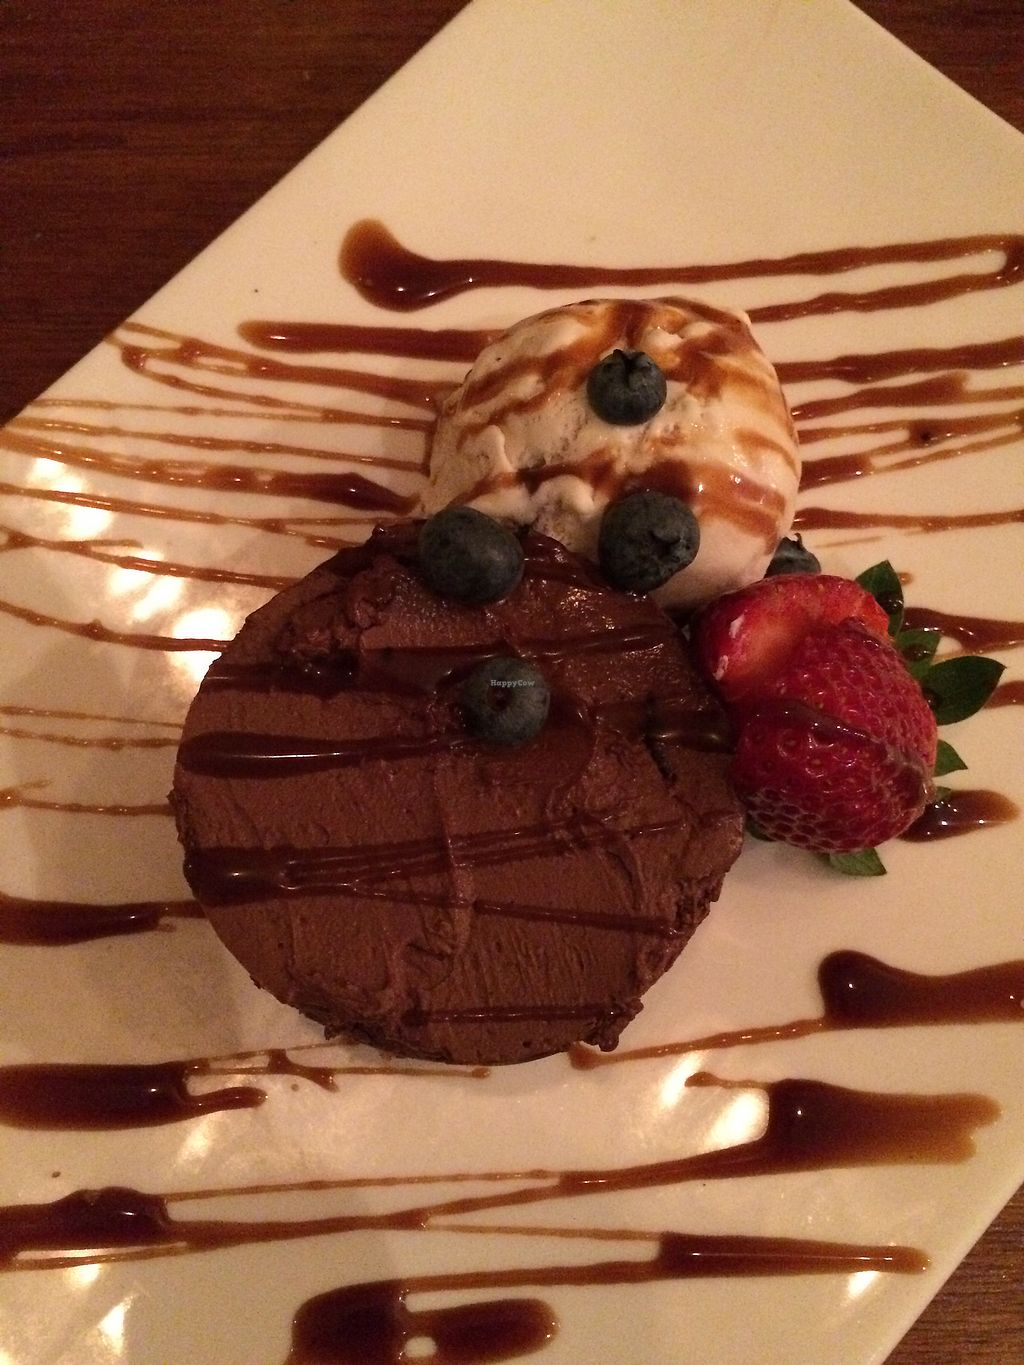 """Photo of Lemon and Thyme  by <a href=""""/members/profile/AndyV"""">AndyV</a> <br/>vegan raw chocolate cheesecake with local CoYo icecream <br/> July 9, 2017  - <a href='/contact/abuse/image/70569/278035'>Report</a>"""